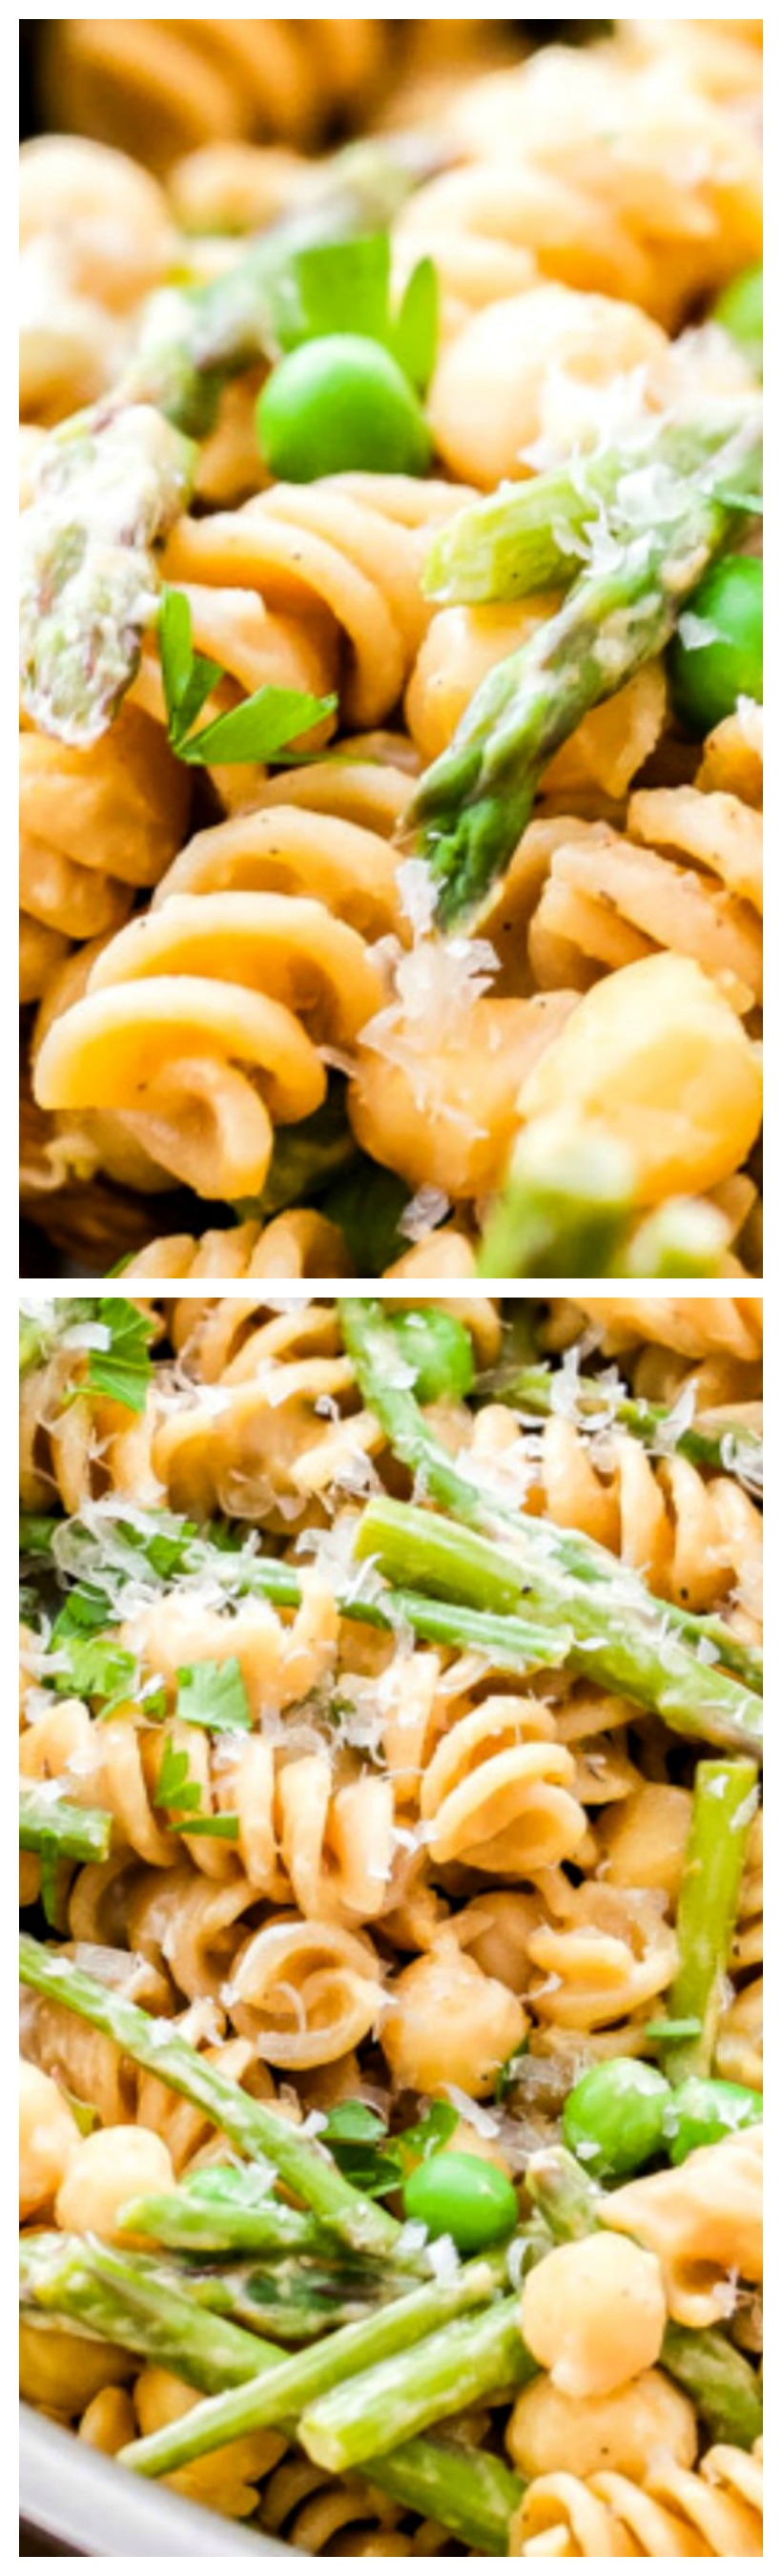 One Pot Creamy Lemon Goat Cheese Pasta with Chickpeas and Asparagus ~ The perfect healthy, vegetarian, comfort food dinner for weeknights... Made with whole wheat pasta, fresh lemon and asparagus, chickpeas and creamy goat cheese to tie it all together.